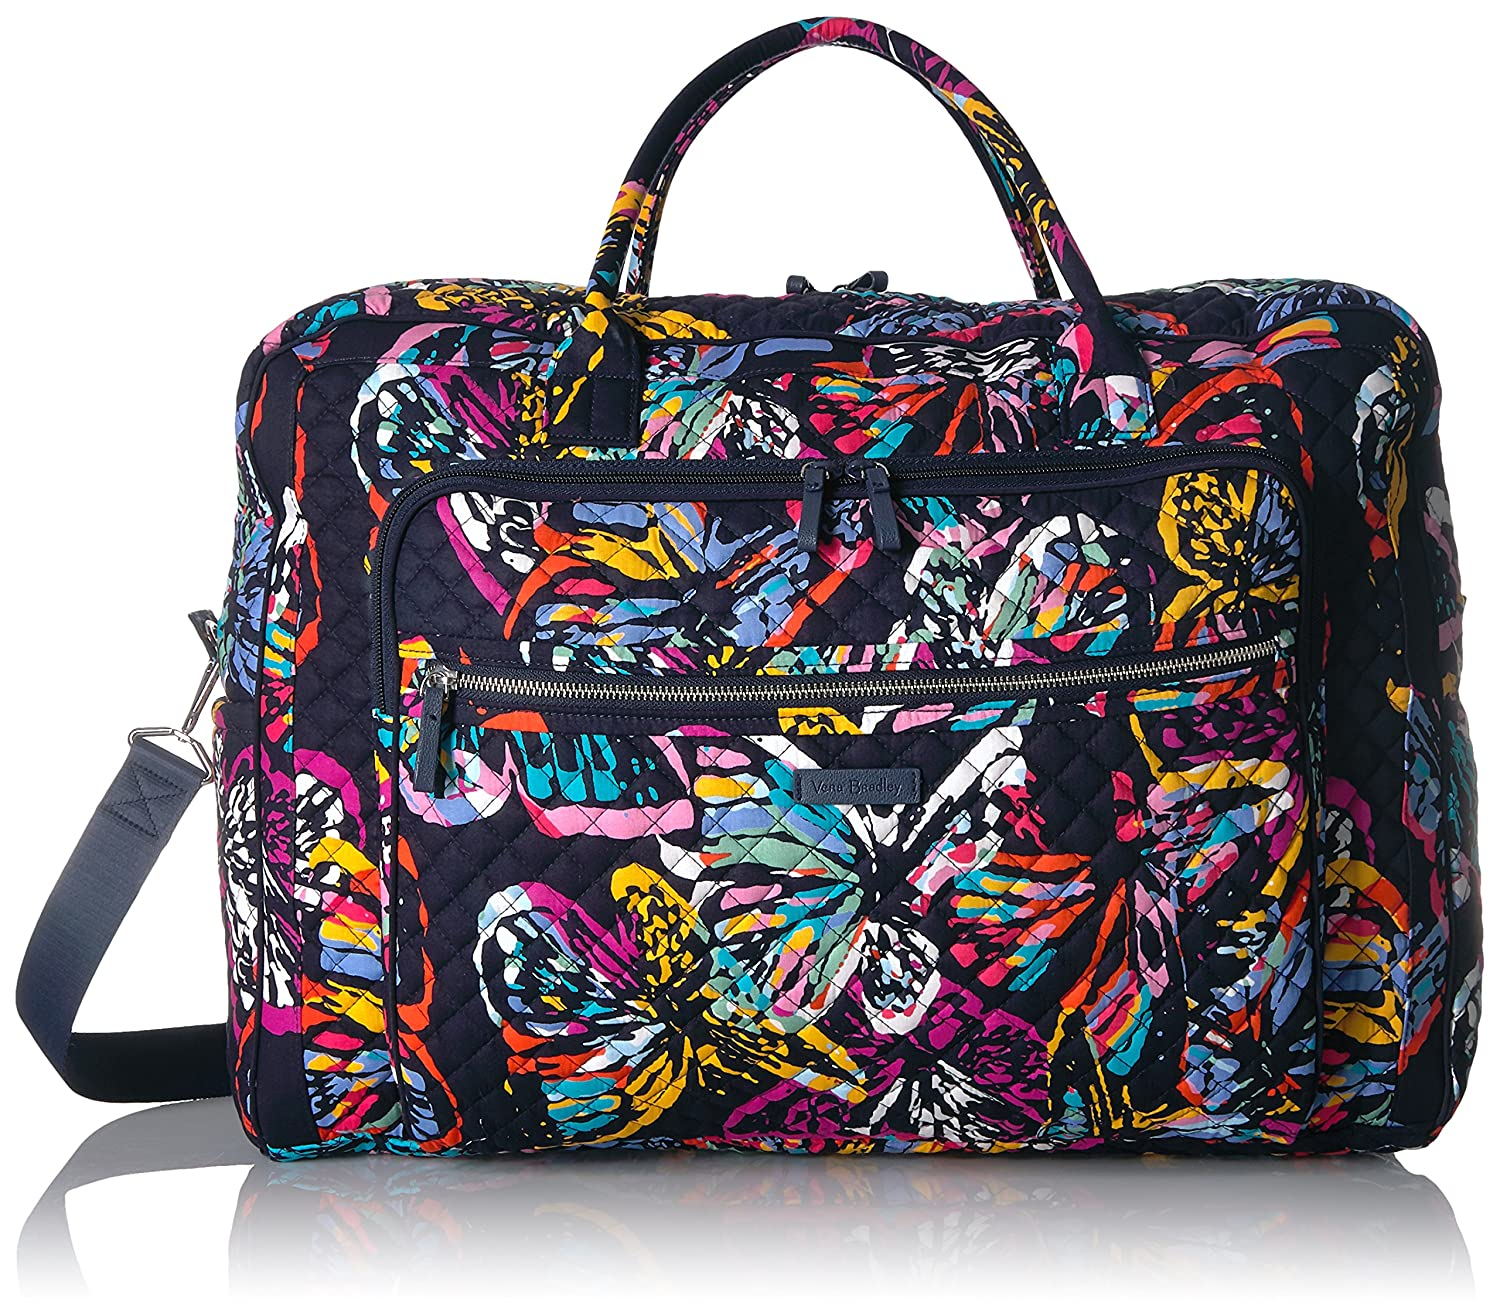 Vera Bradley Iconic Grand Weekender Travel Bag, Signature Cotton Butterfly Flutter 22118-I81